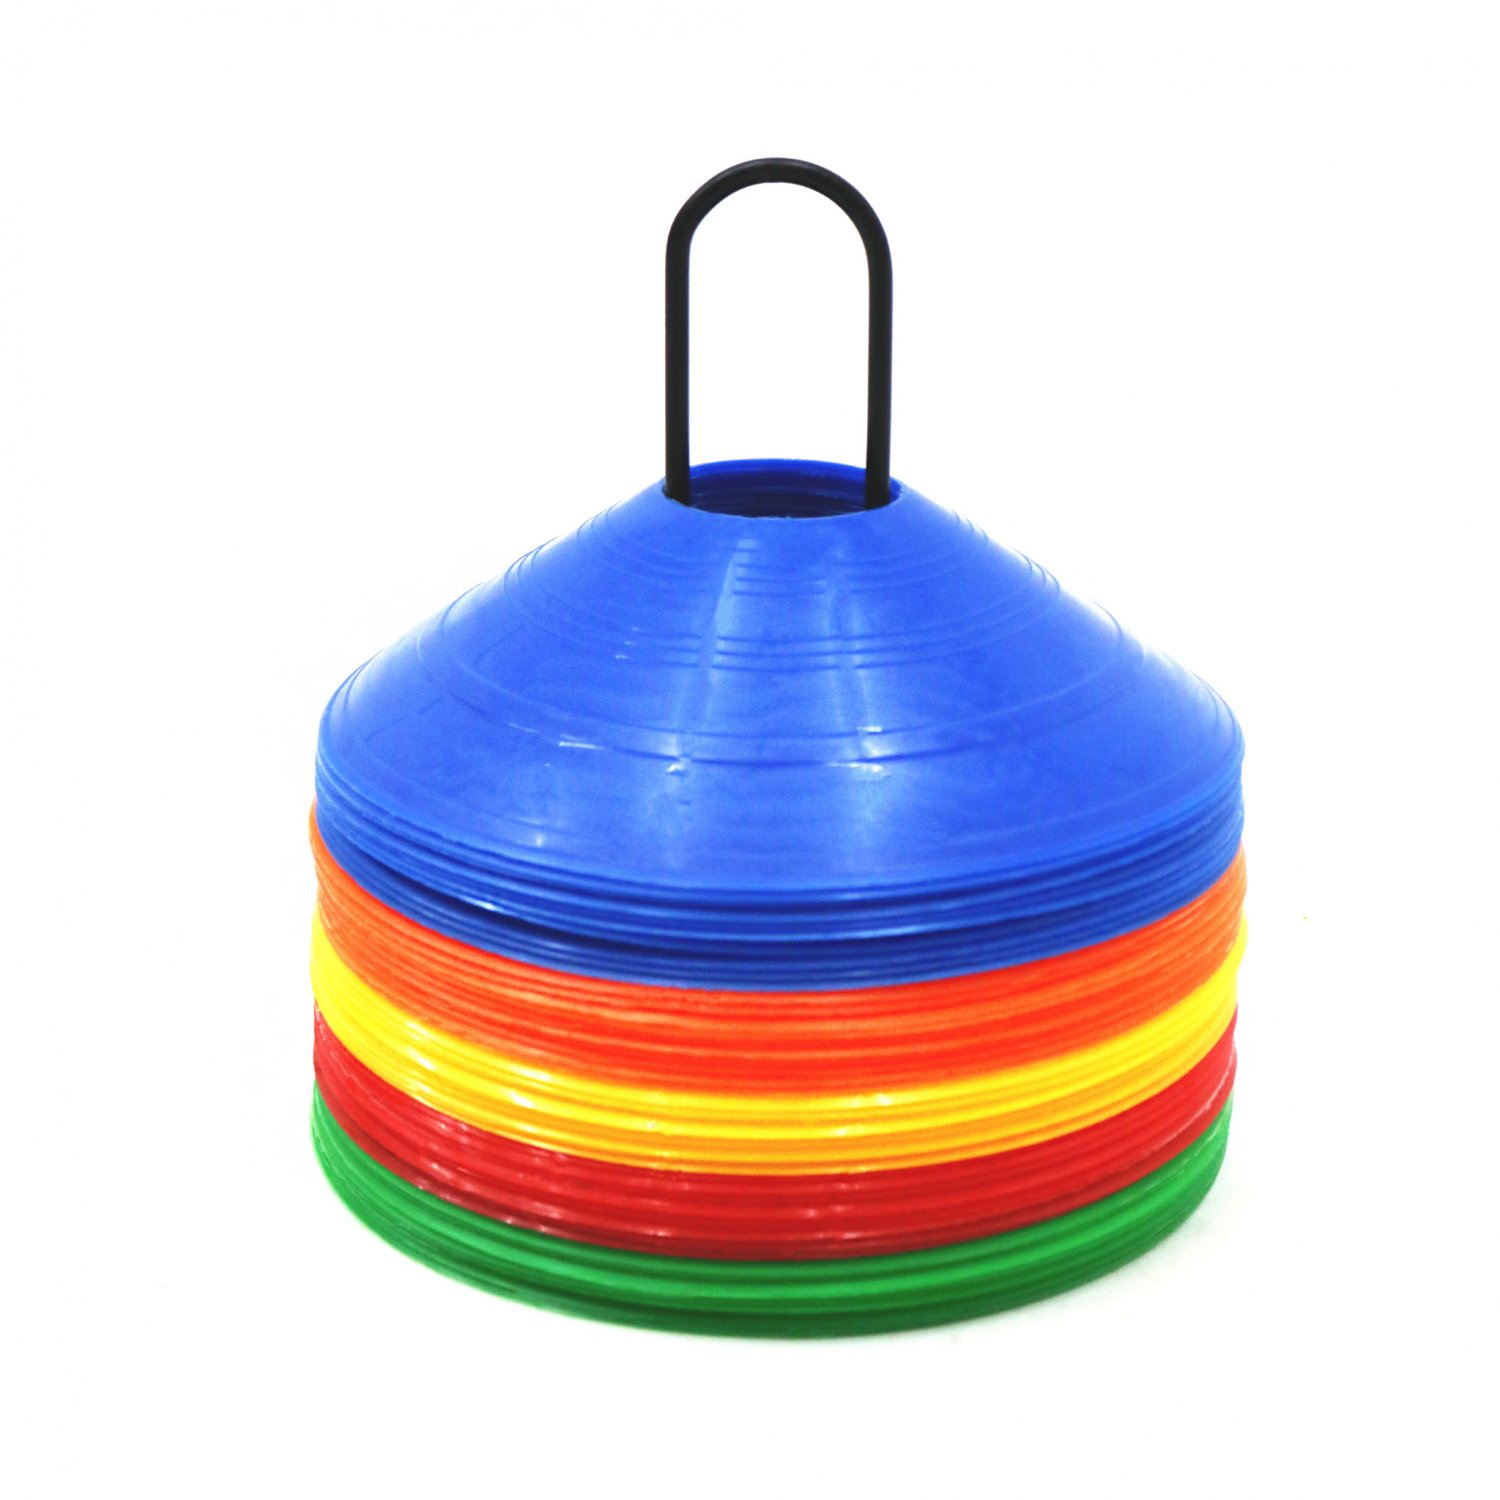 50x Multi Coloured Sports Training Markers Discs Cones w/ Stand